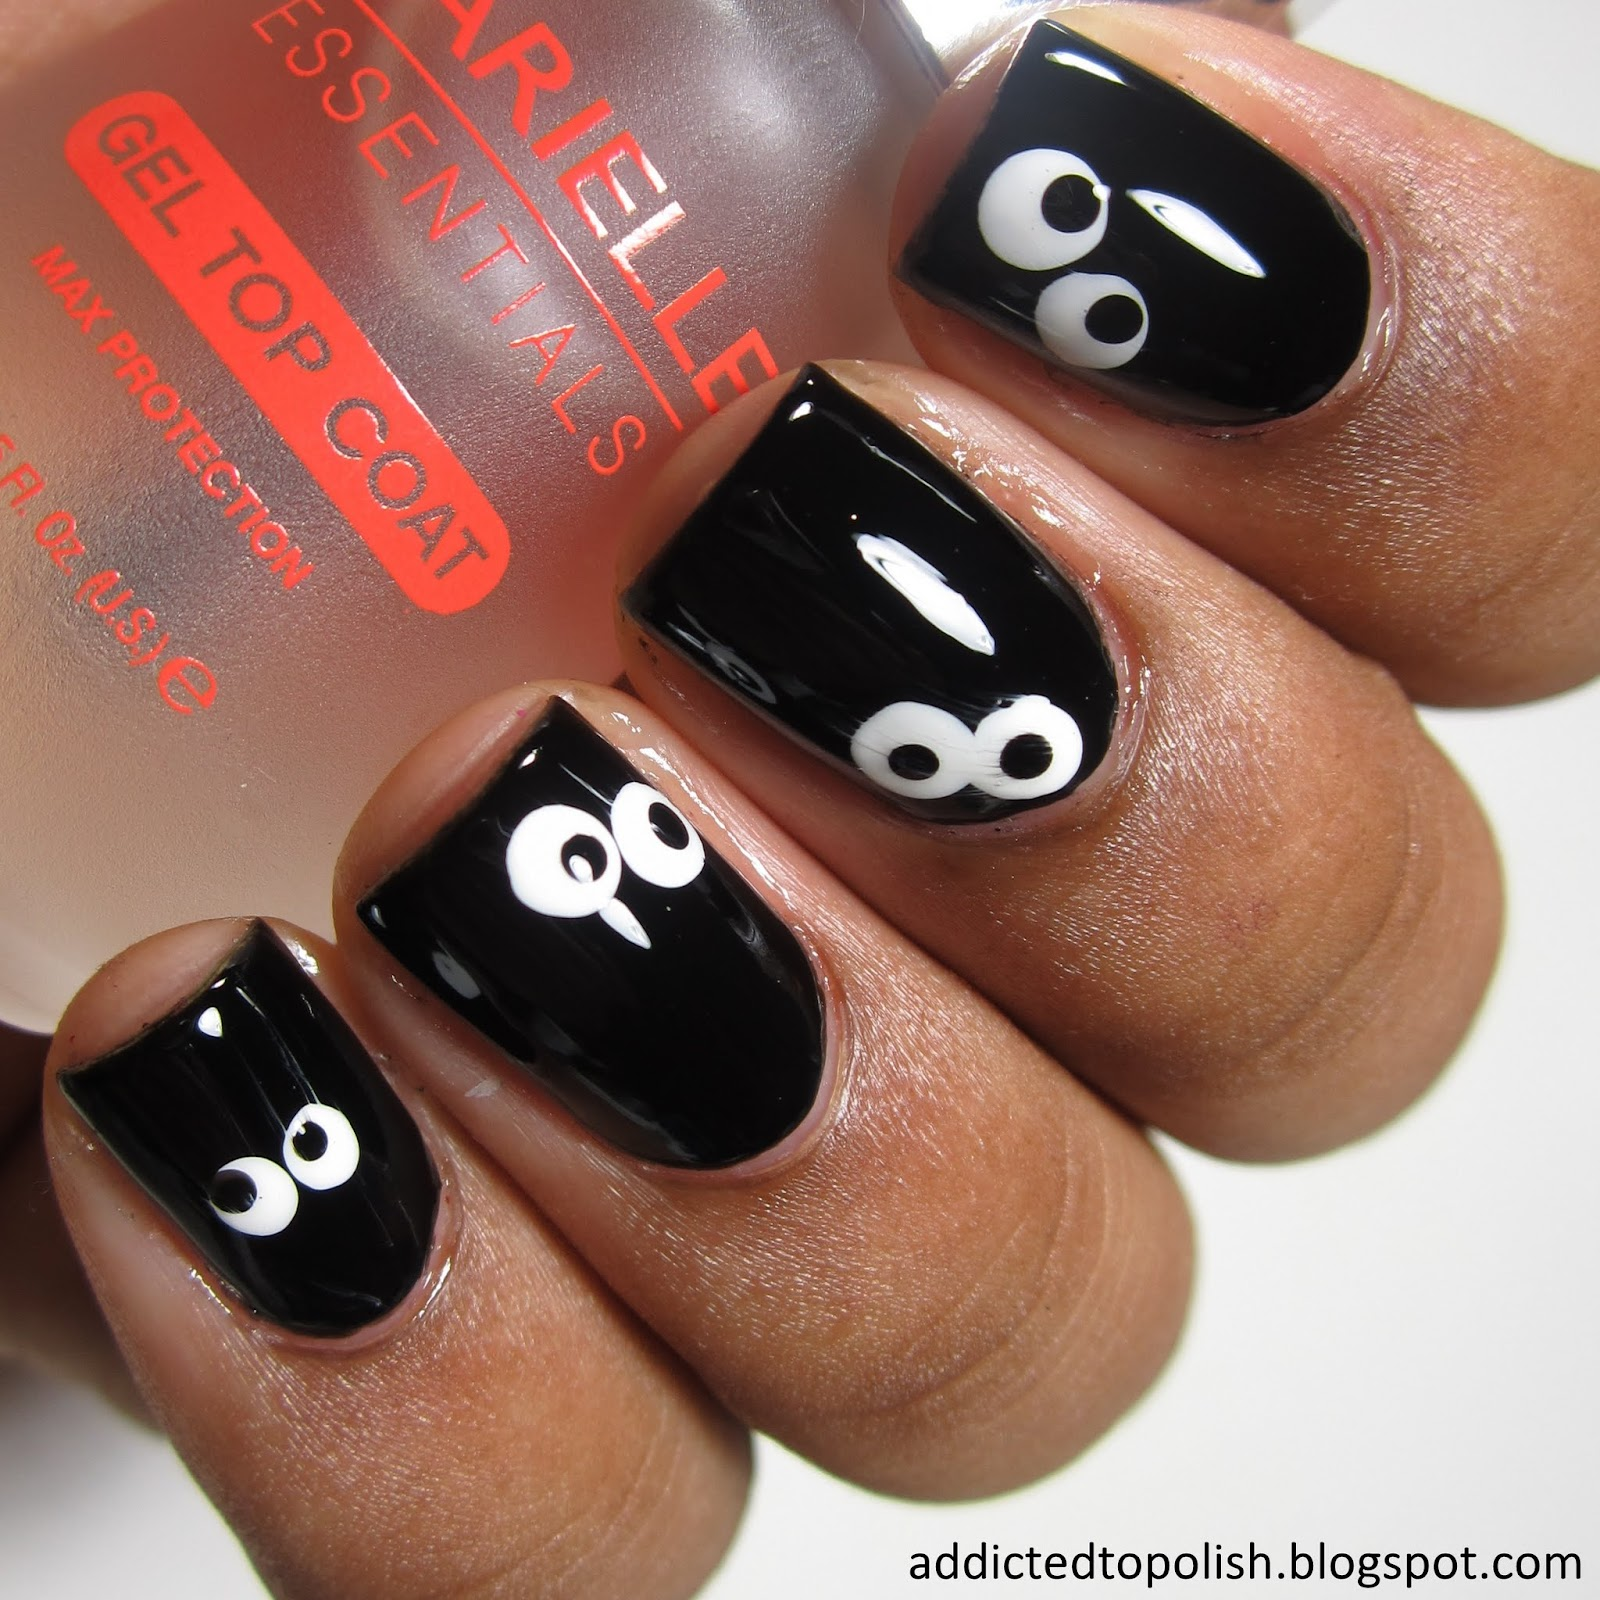 spooky-googly-eyes-in-the-dark-halloween-nail-art